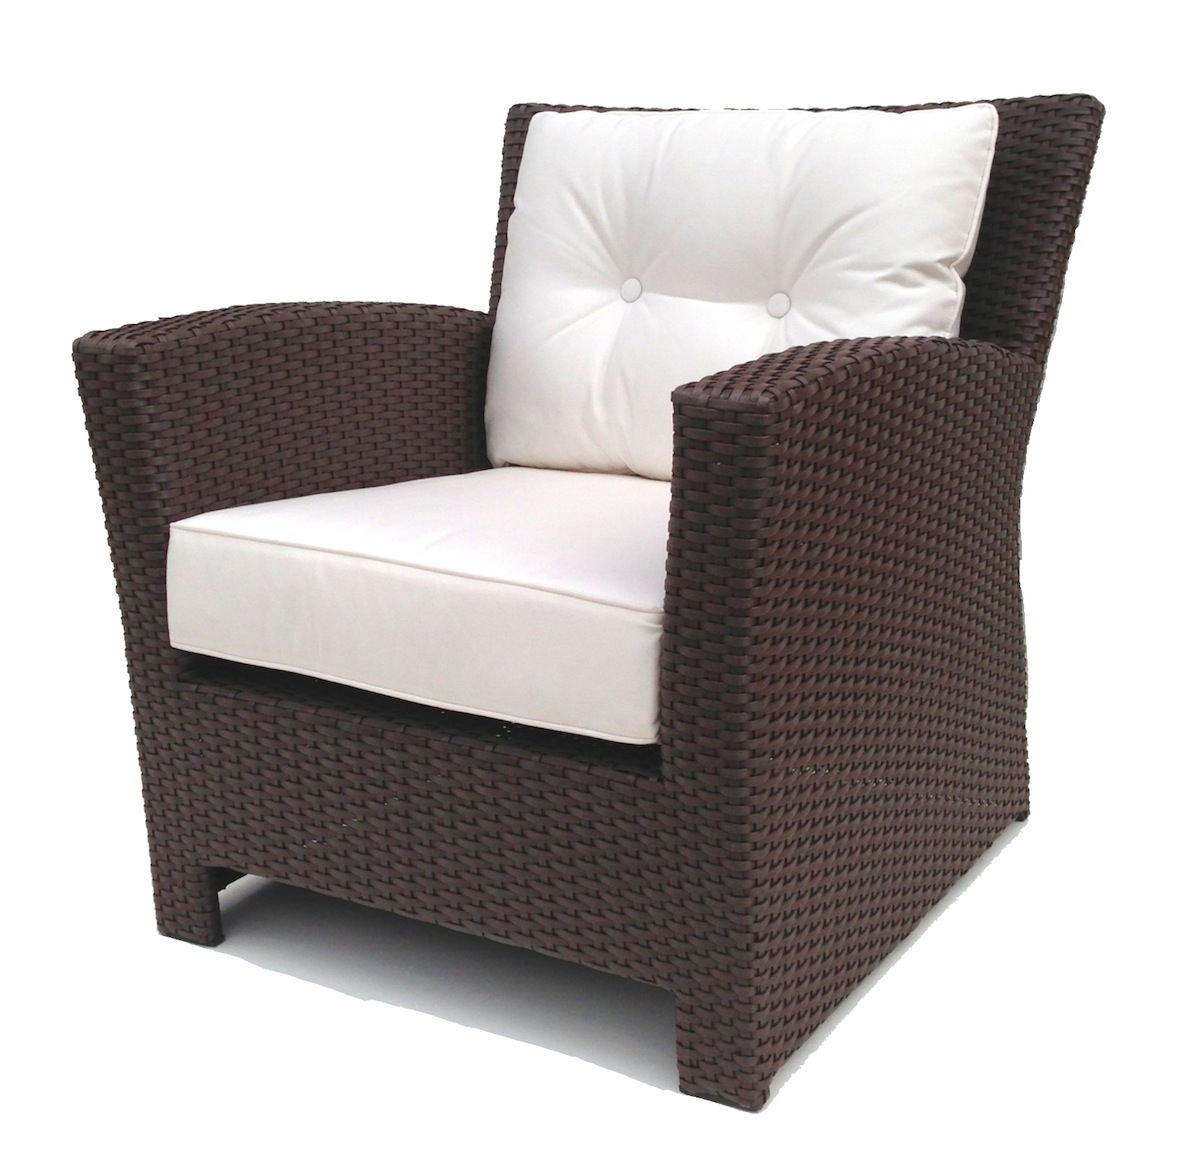 Outdoor wicker chairs  46